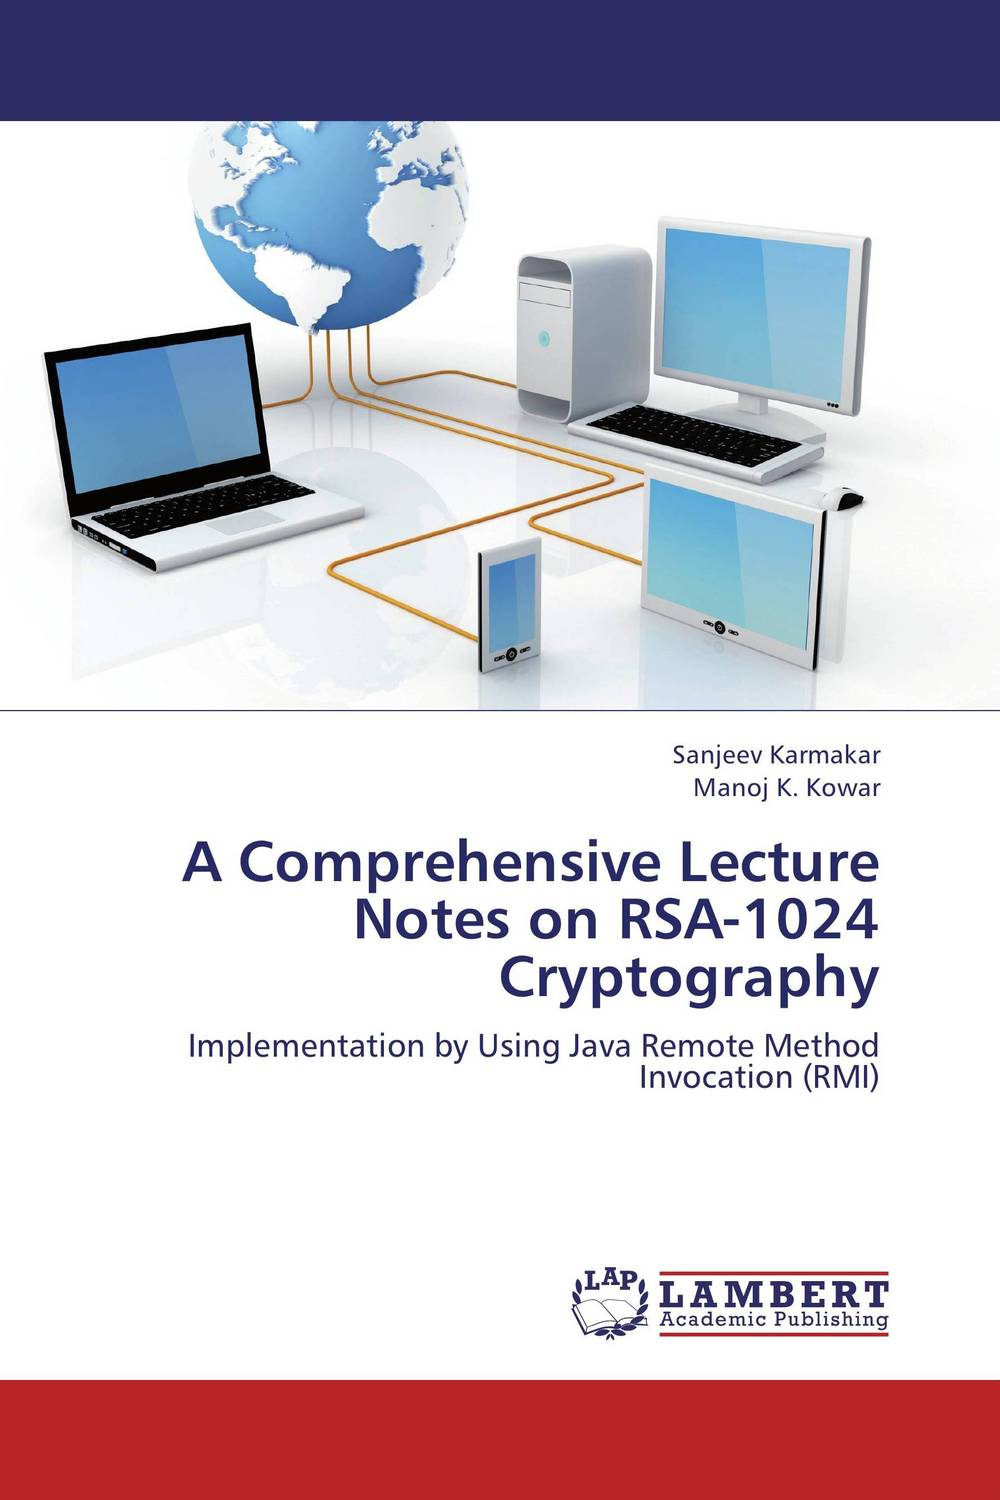 A Comprehensive Lecture Notes on RSA-1024 Cryptography elliptic curve digital signatures in rsa hardware